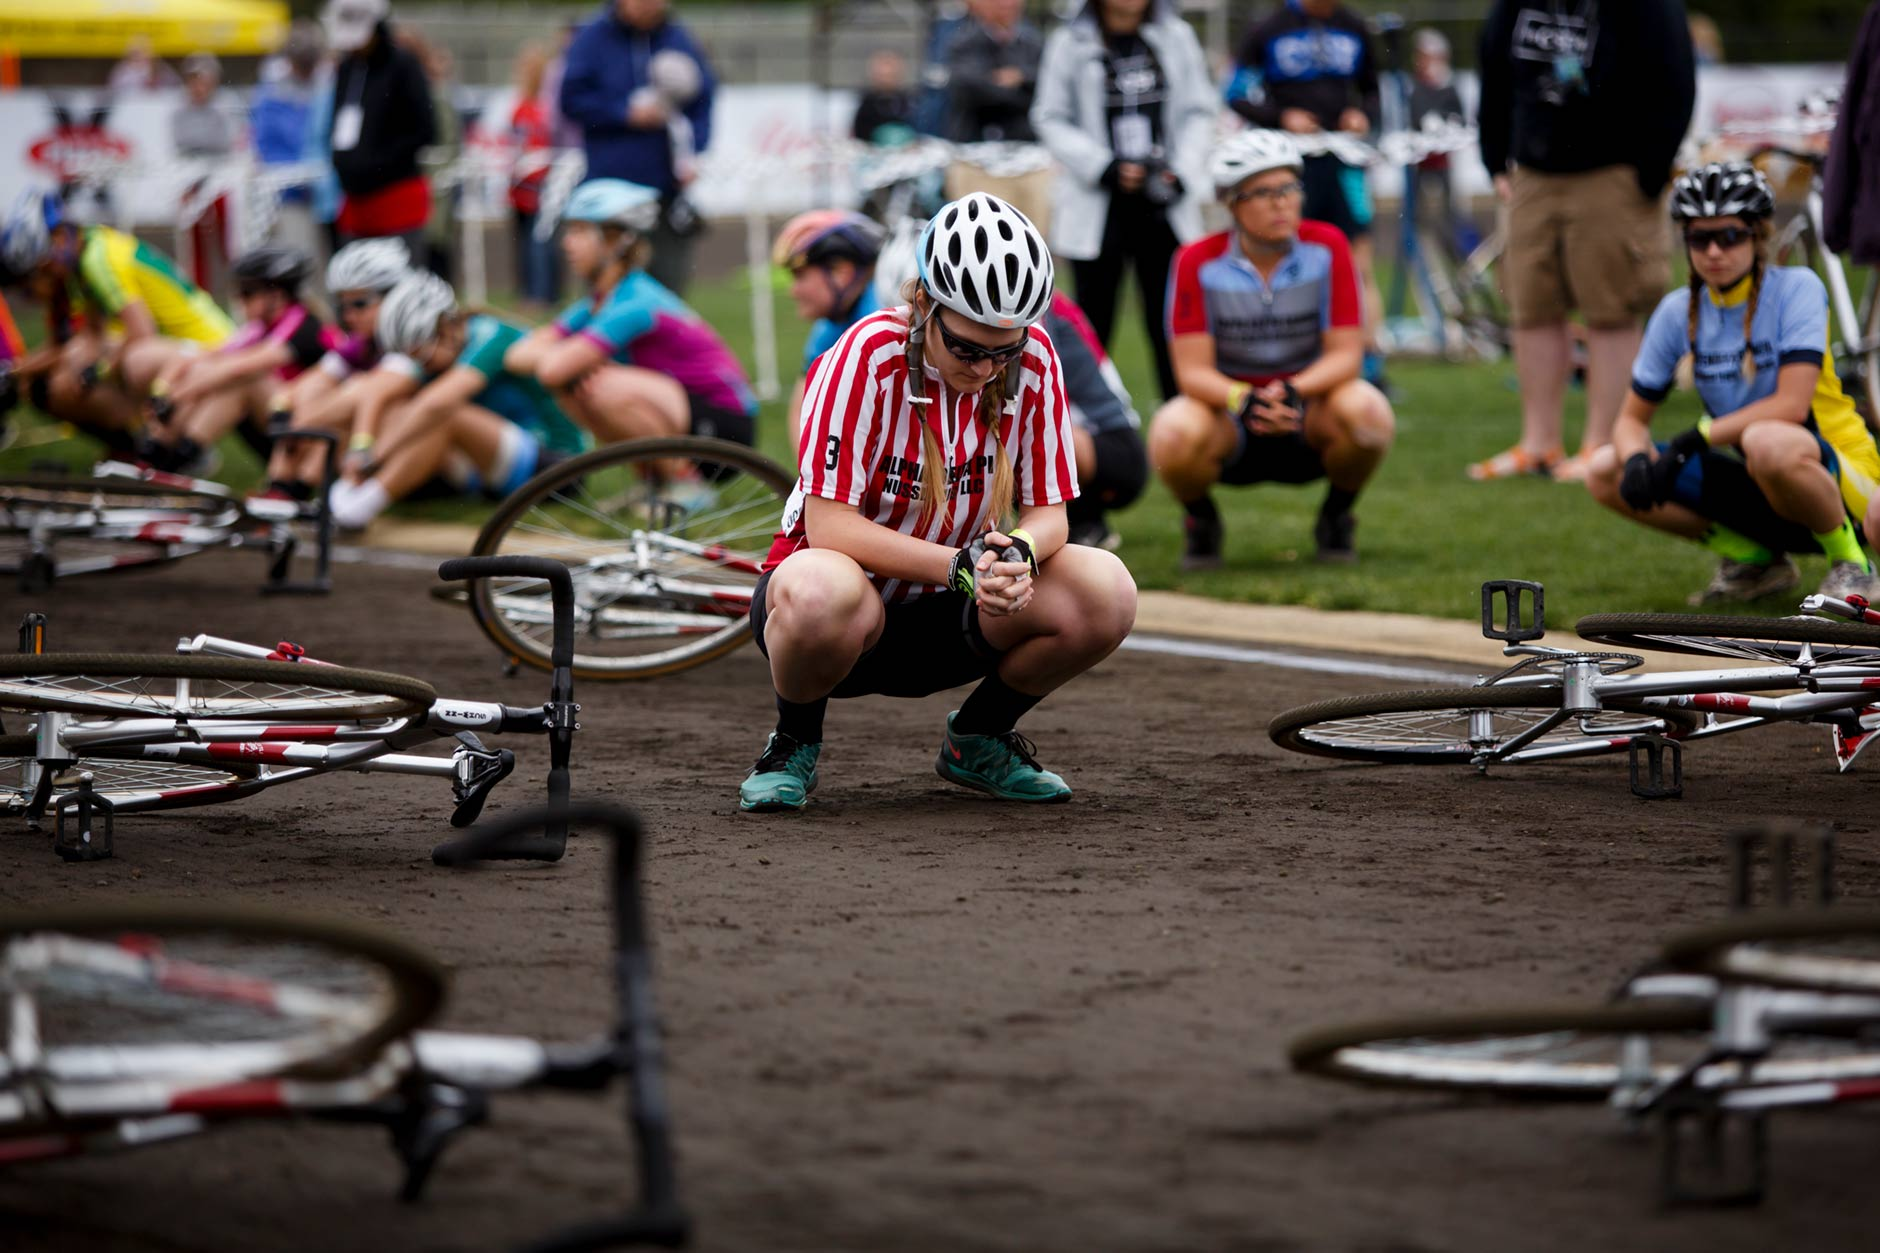 Alpha Delta Pi rider Abby Messenger bows her head during an invocation before the Women's Little 500 at Bill Armstrong Stadium on Friday, April 21, 2017. (James Brosher/IU Communications)